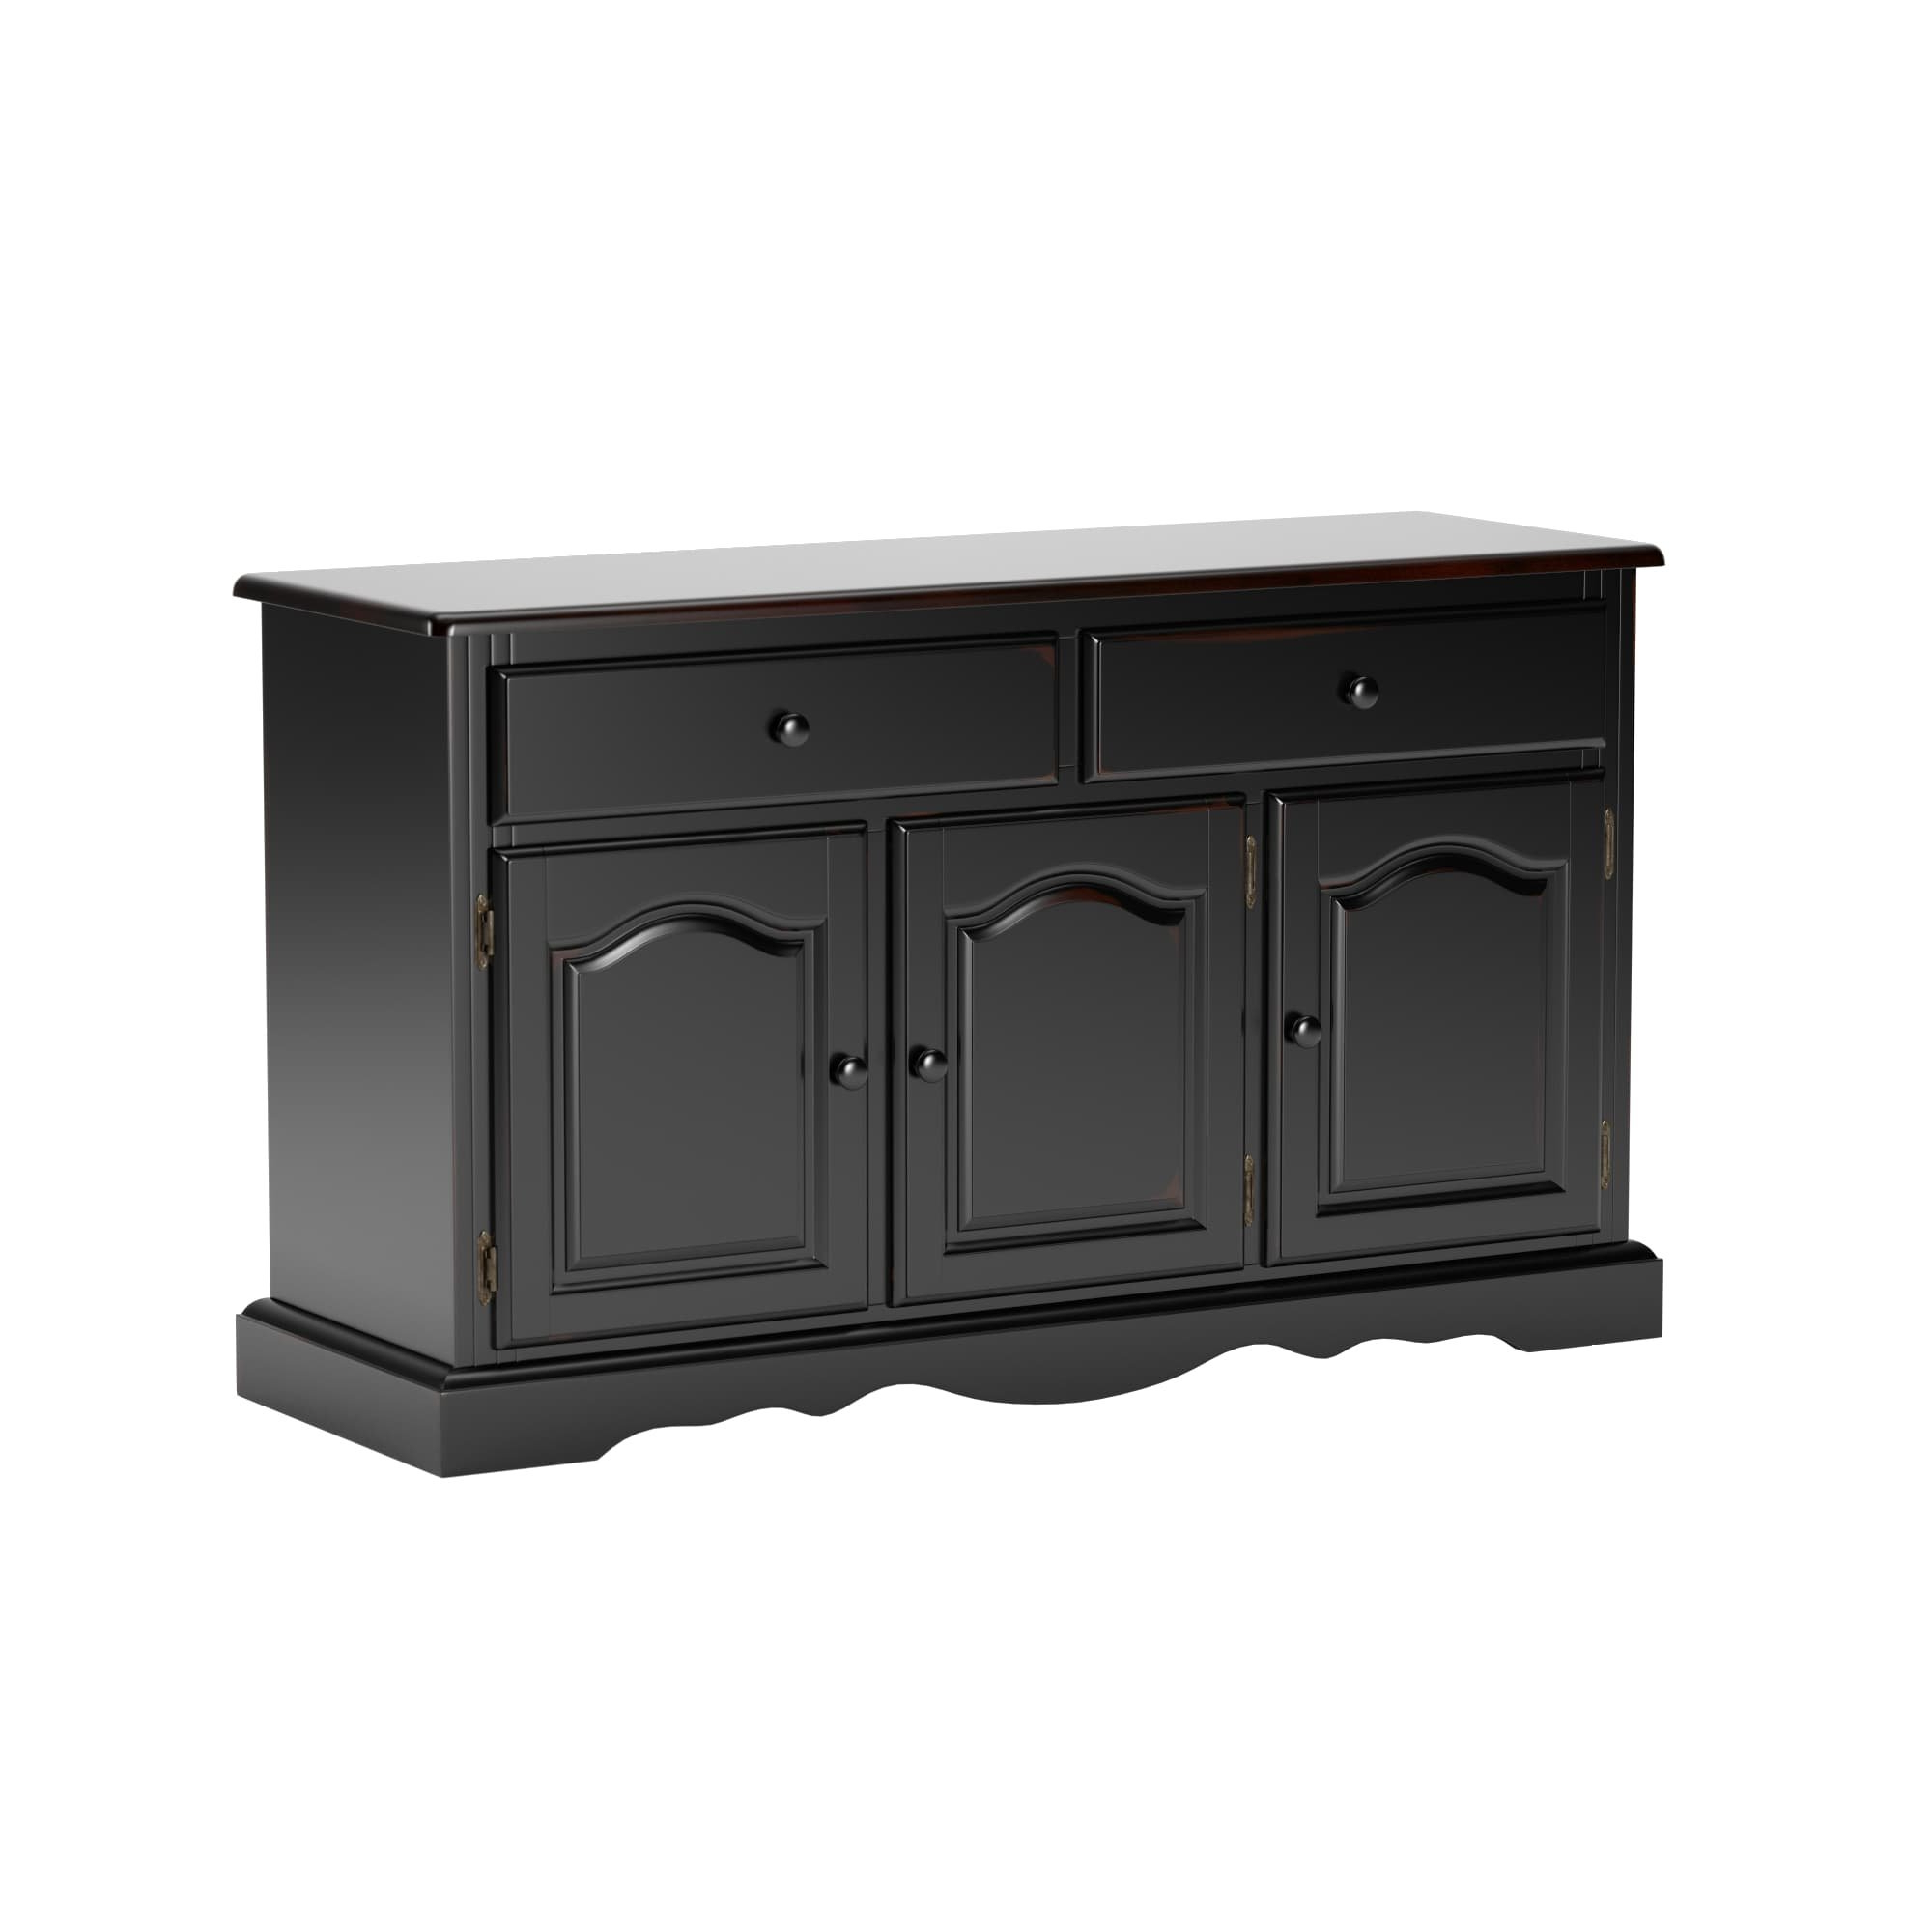 3 Drawer 3 Door Credenza | Wayfair In Giulia 3 Drawer Credenzas (Gallery 7 of 20)